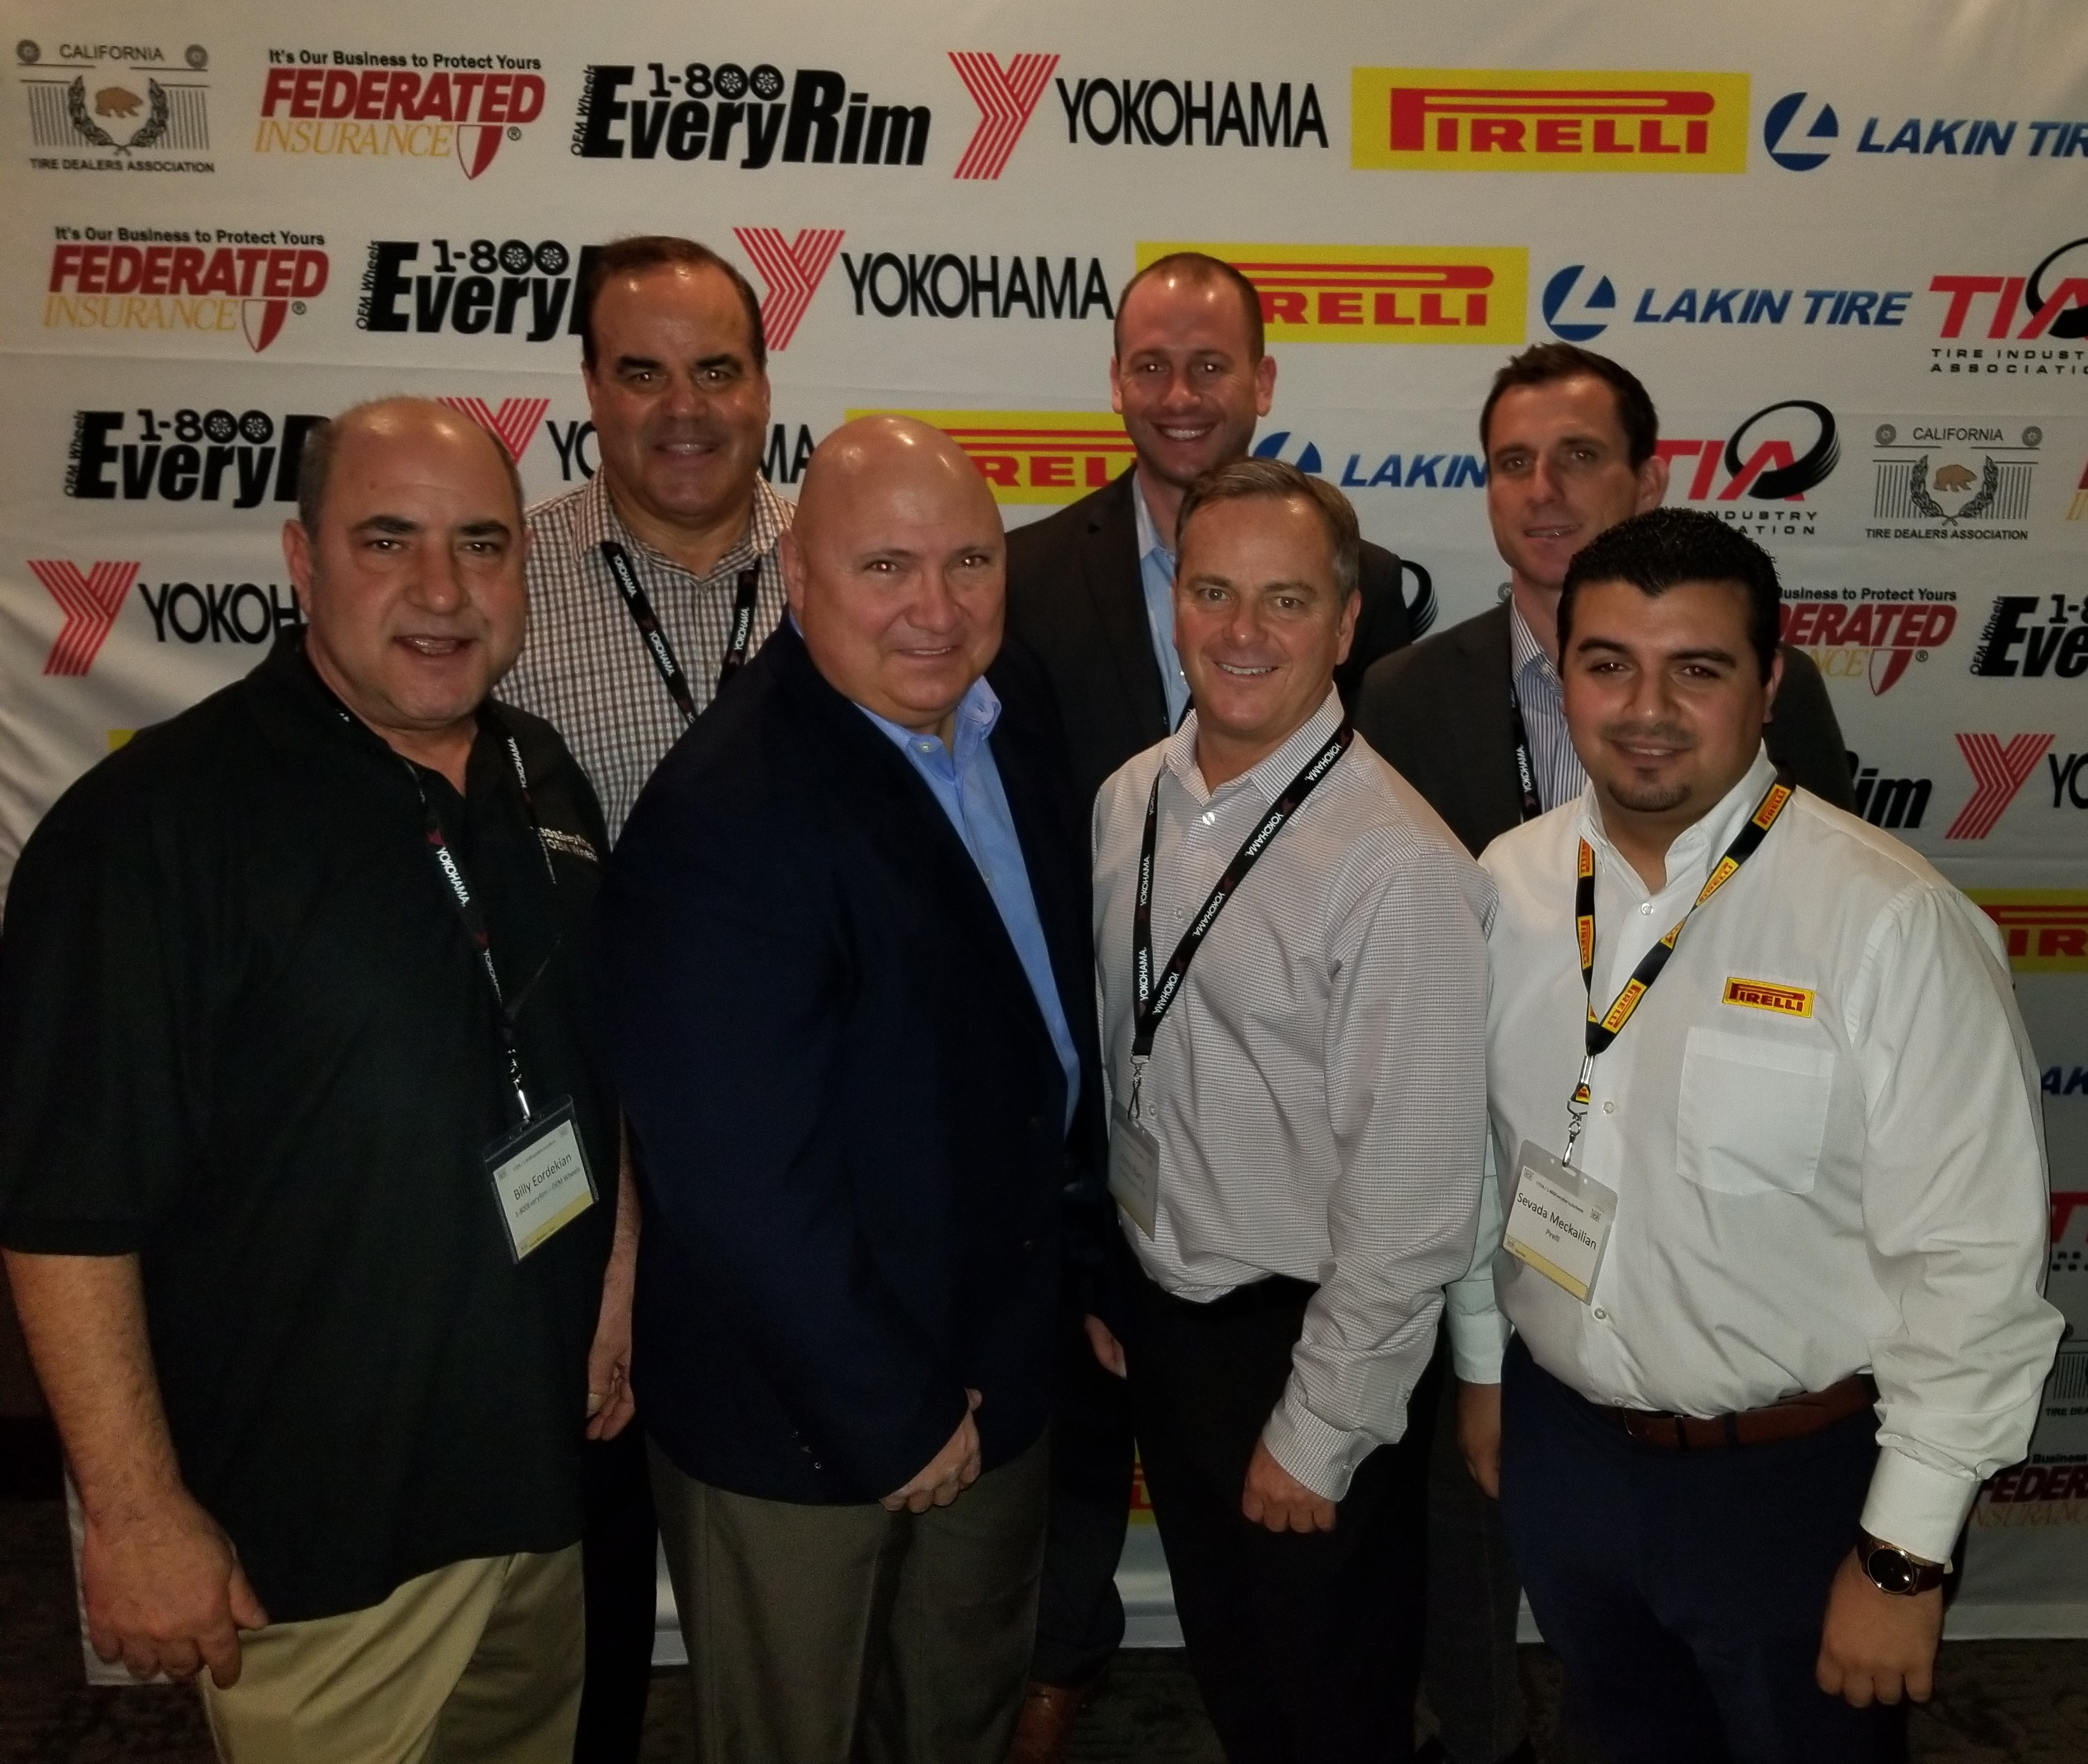 California Tire Dealers Kick Off the New Year